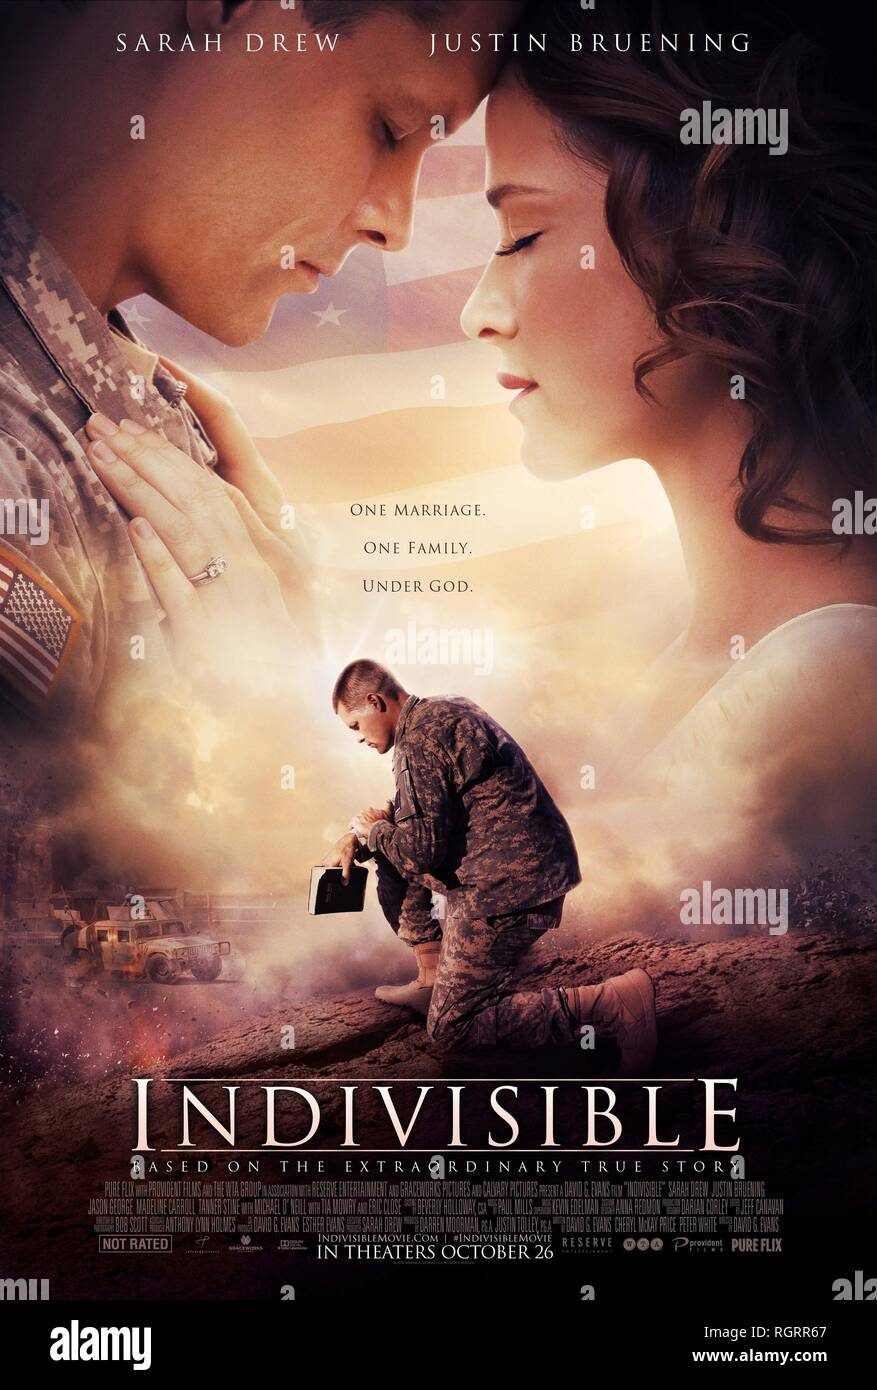 INDIVISIBLE, MOVIE POSTER, 2018 - Stock Image